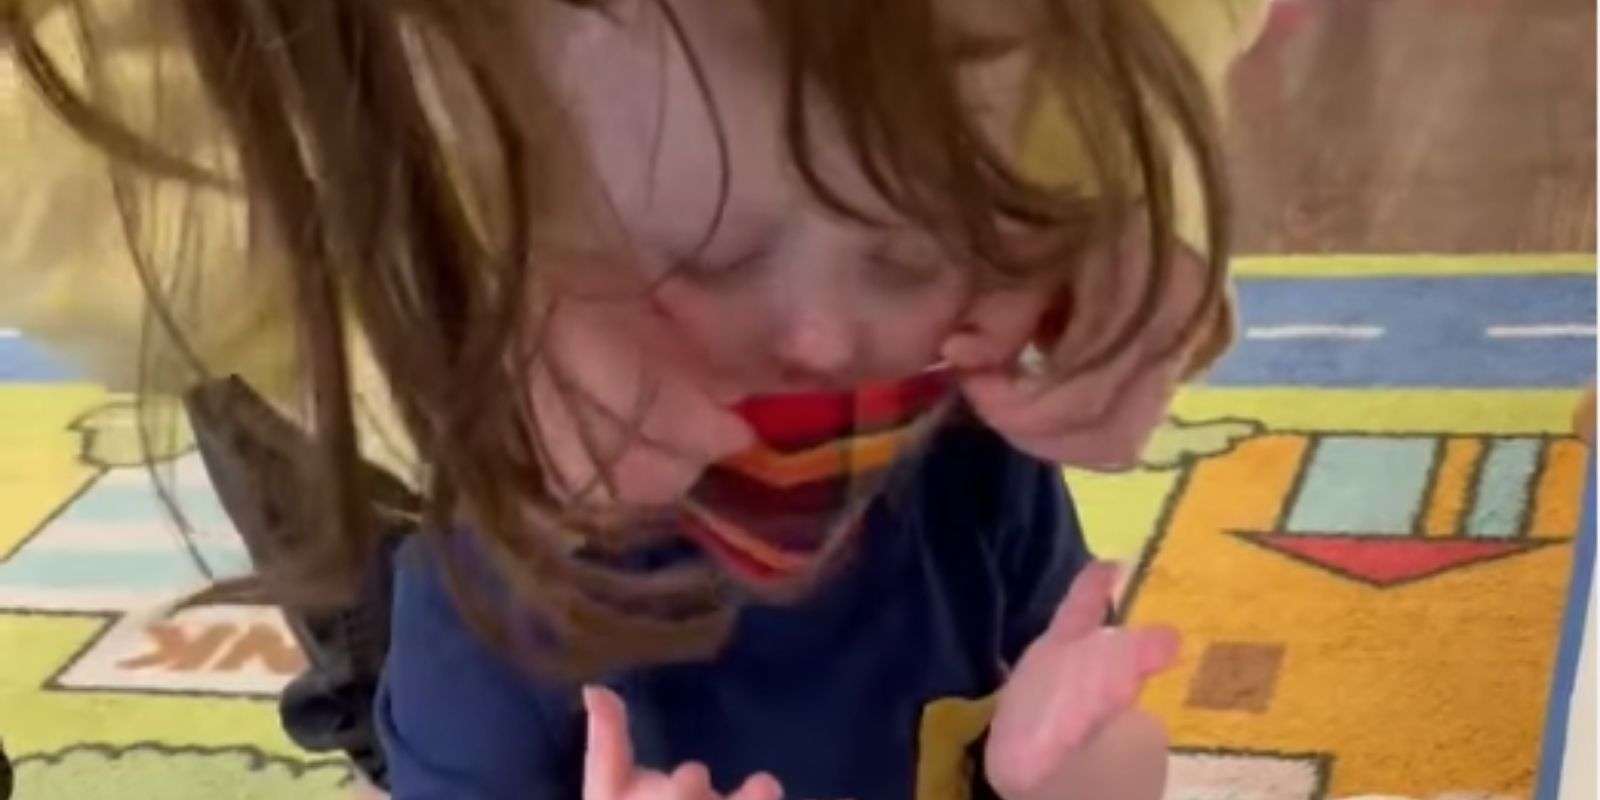 WATCH: viral video of toddler causes pushback against NY mask mandate in daycares